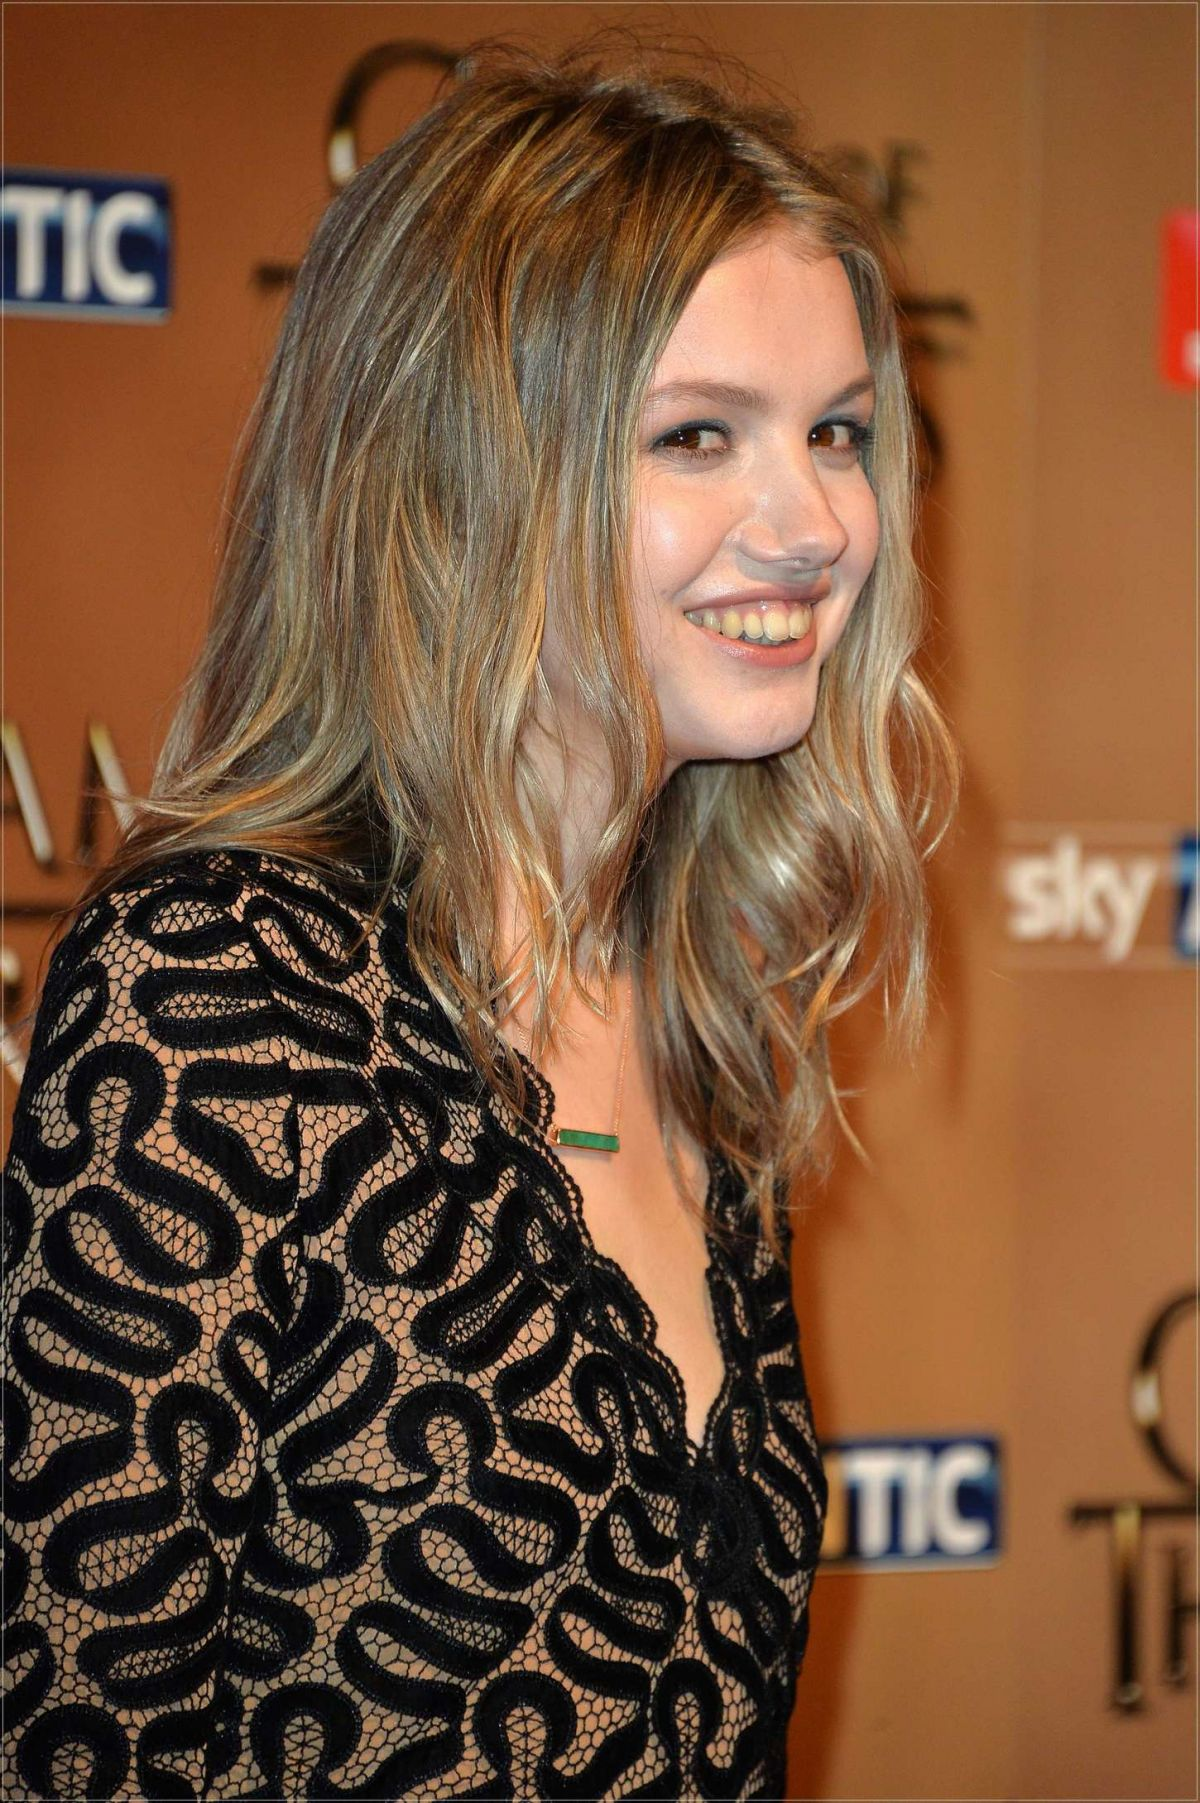 Paparazzi Hannah Murray nude (42 foto and video), Pussy, Paparazzi, Twitter, cleavage 2020